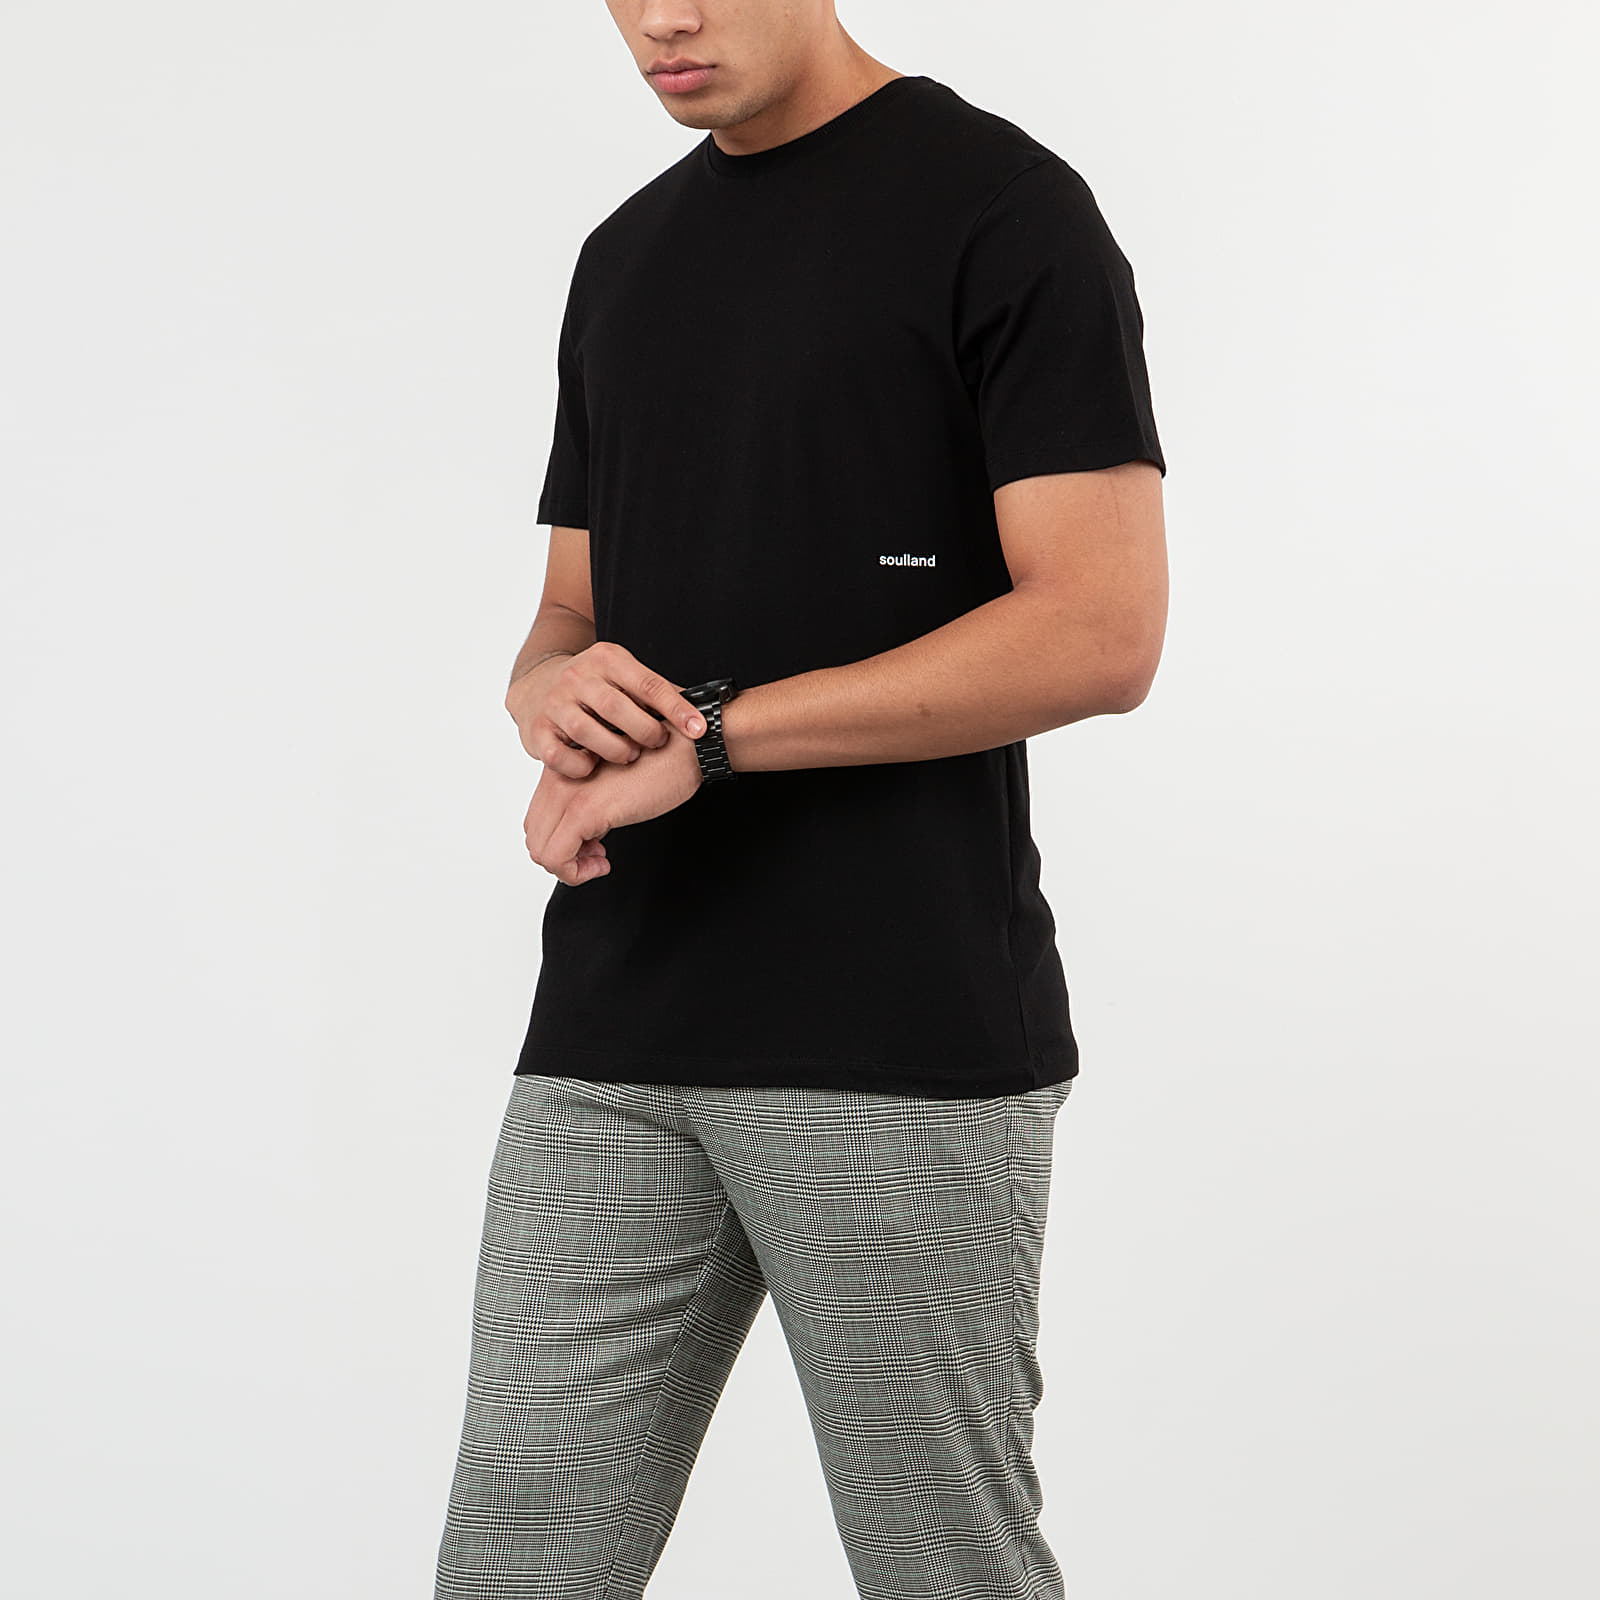 Trička Soulland Coffey Tee Black